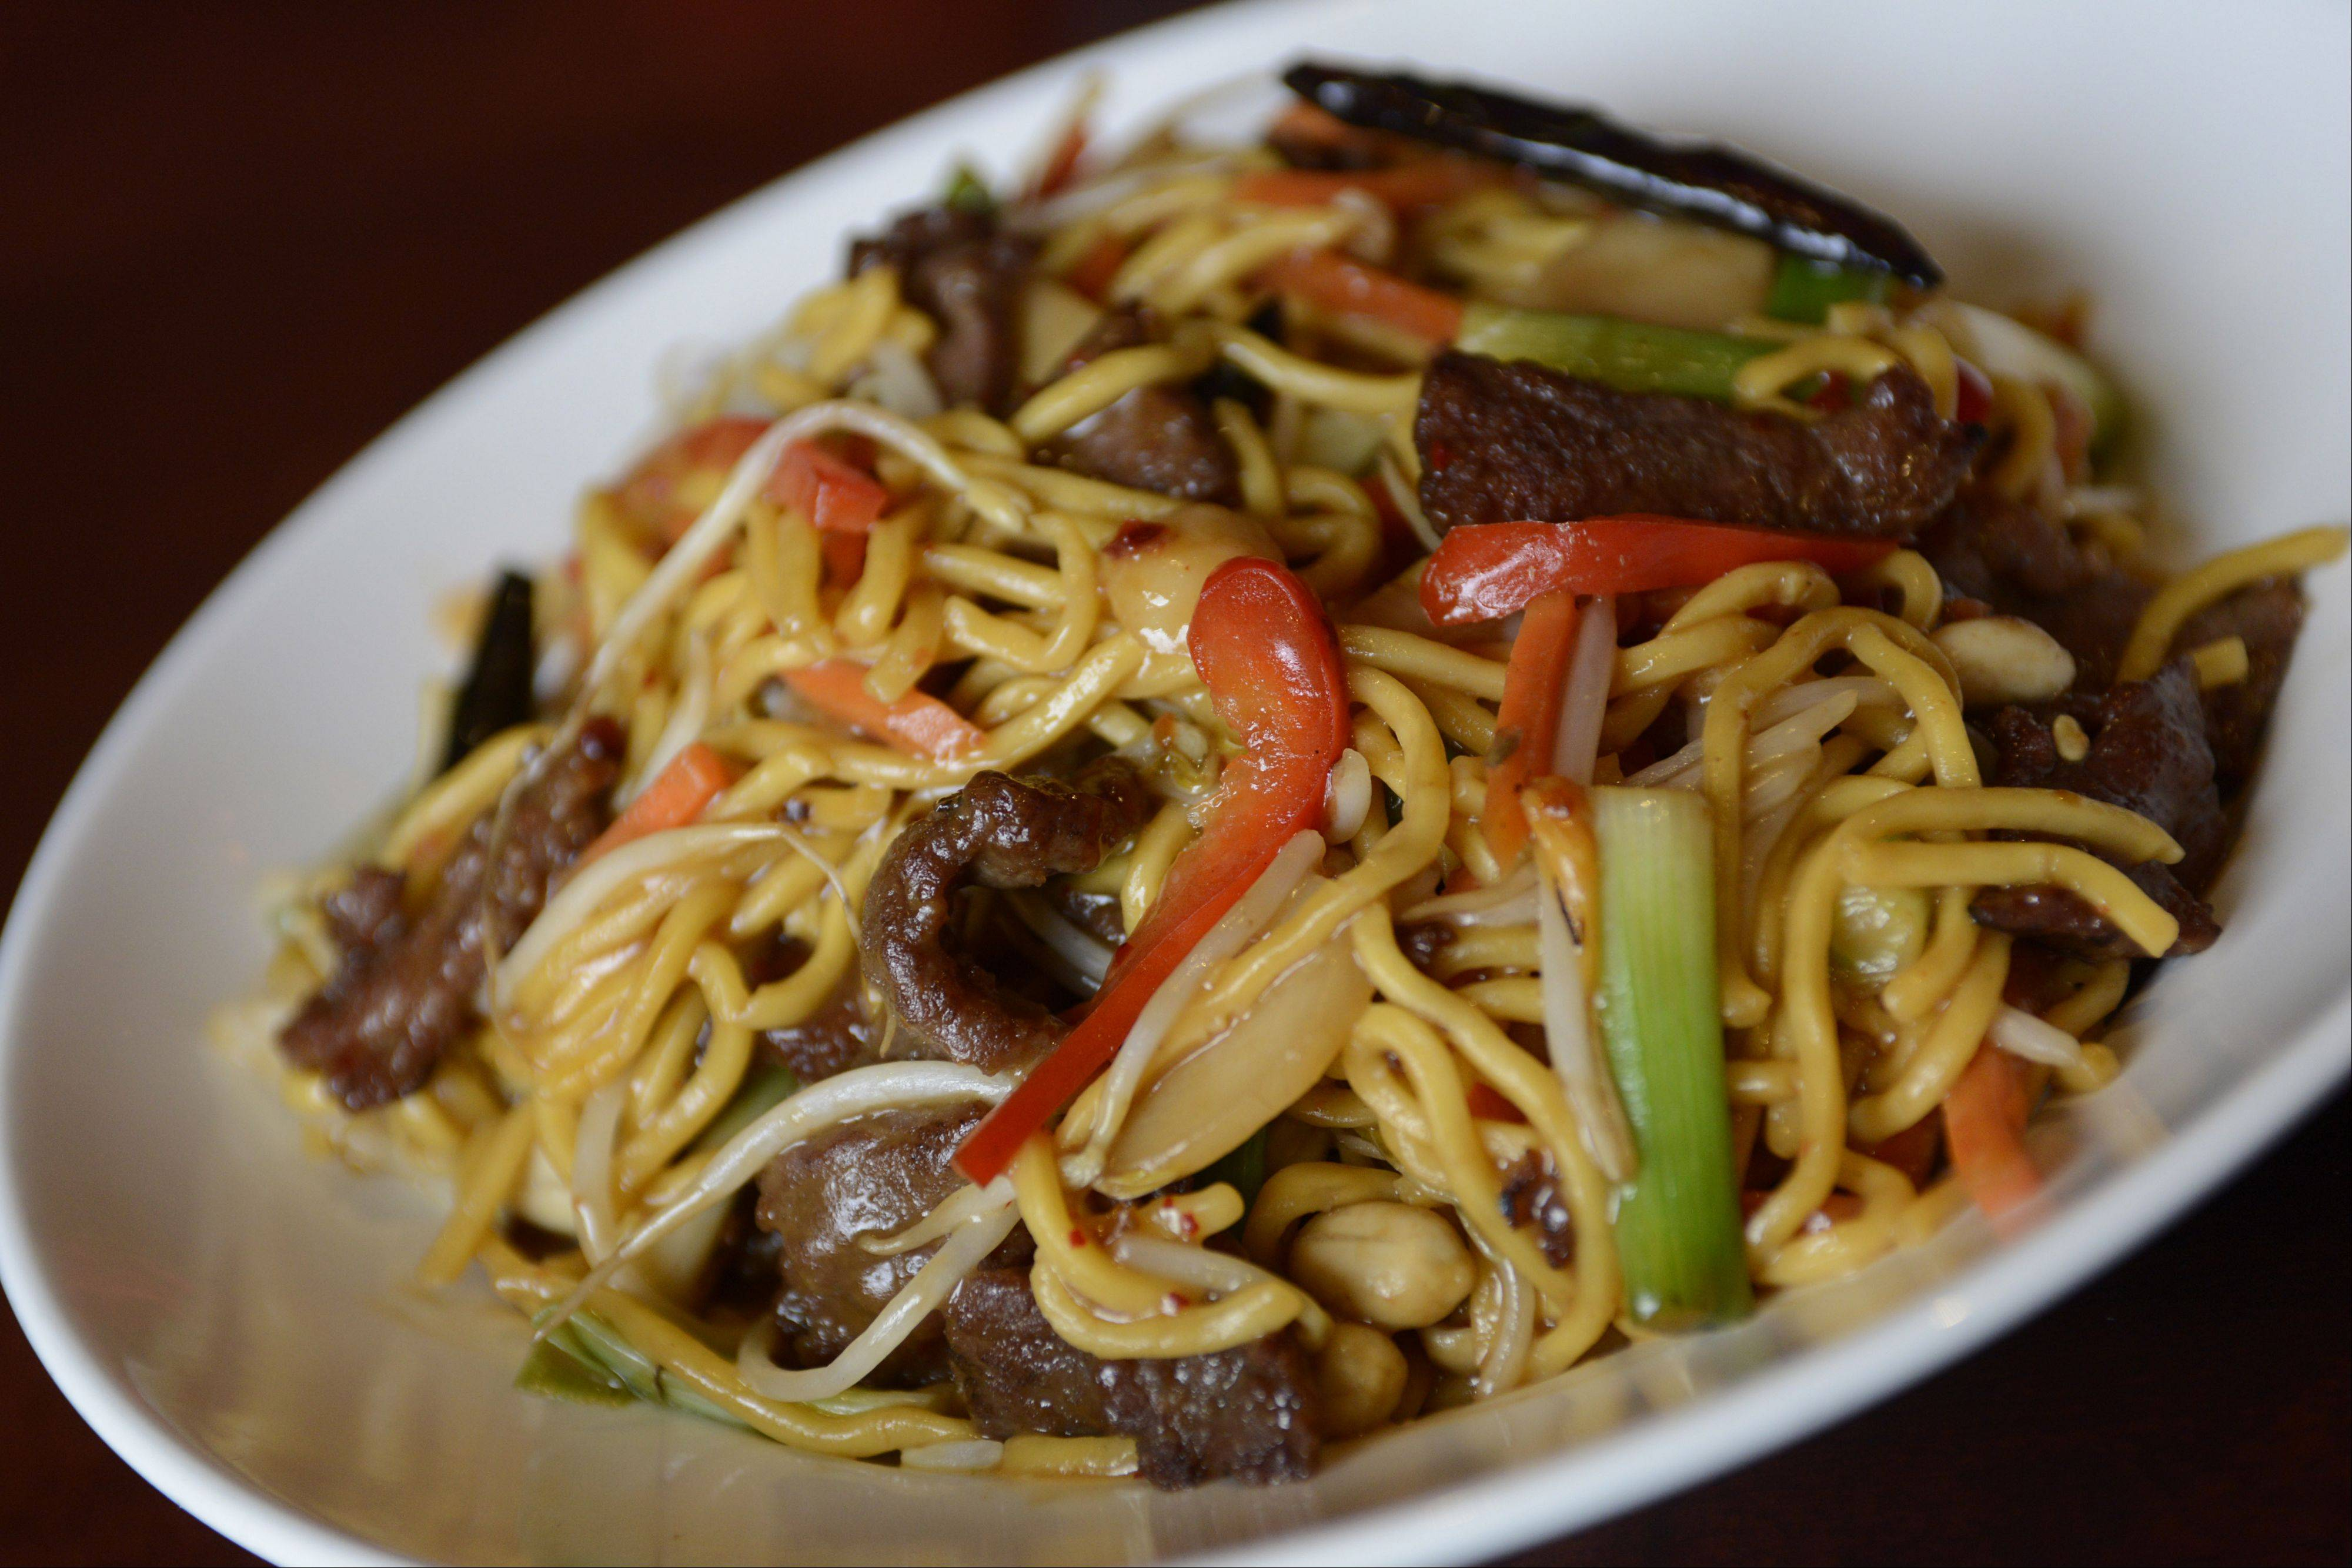 Heat up dinner with kung pao noodles with steak at Wok'n Fire in South Barrington.